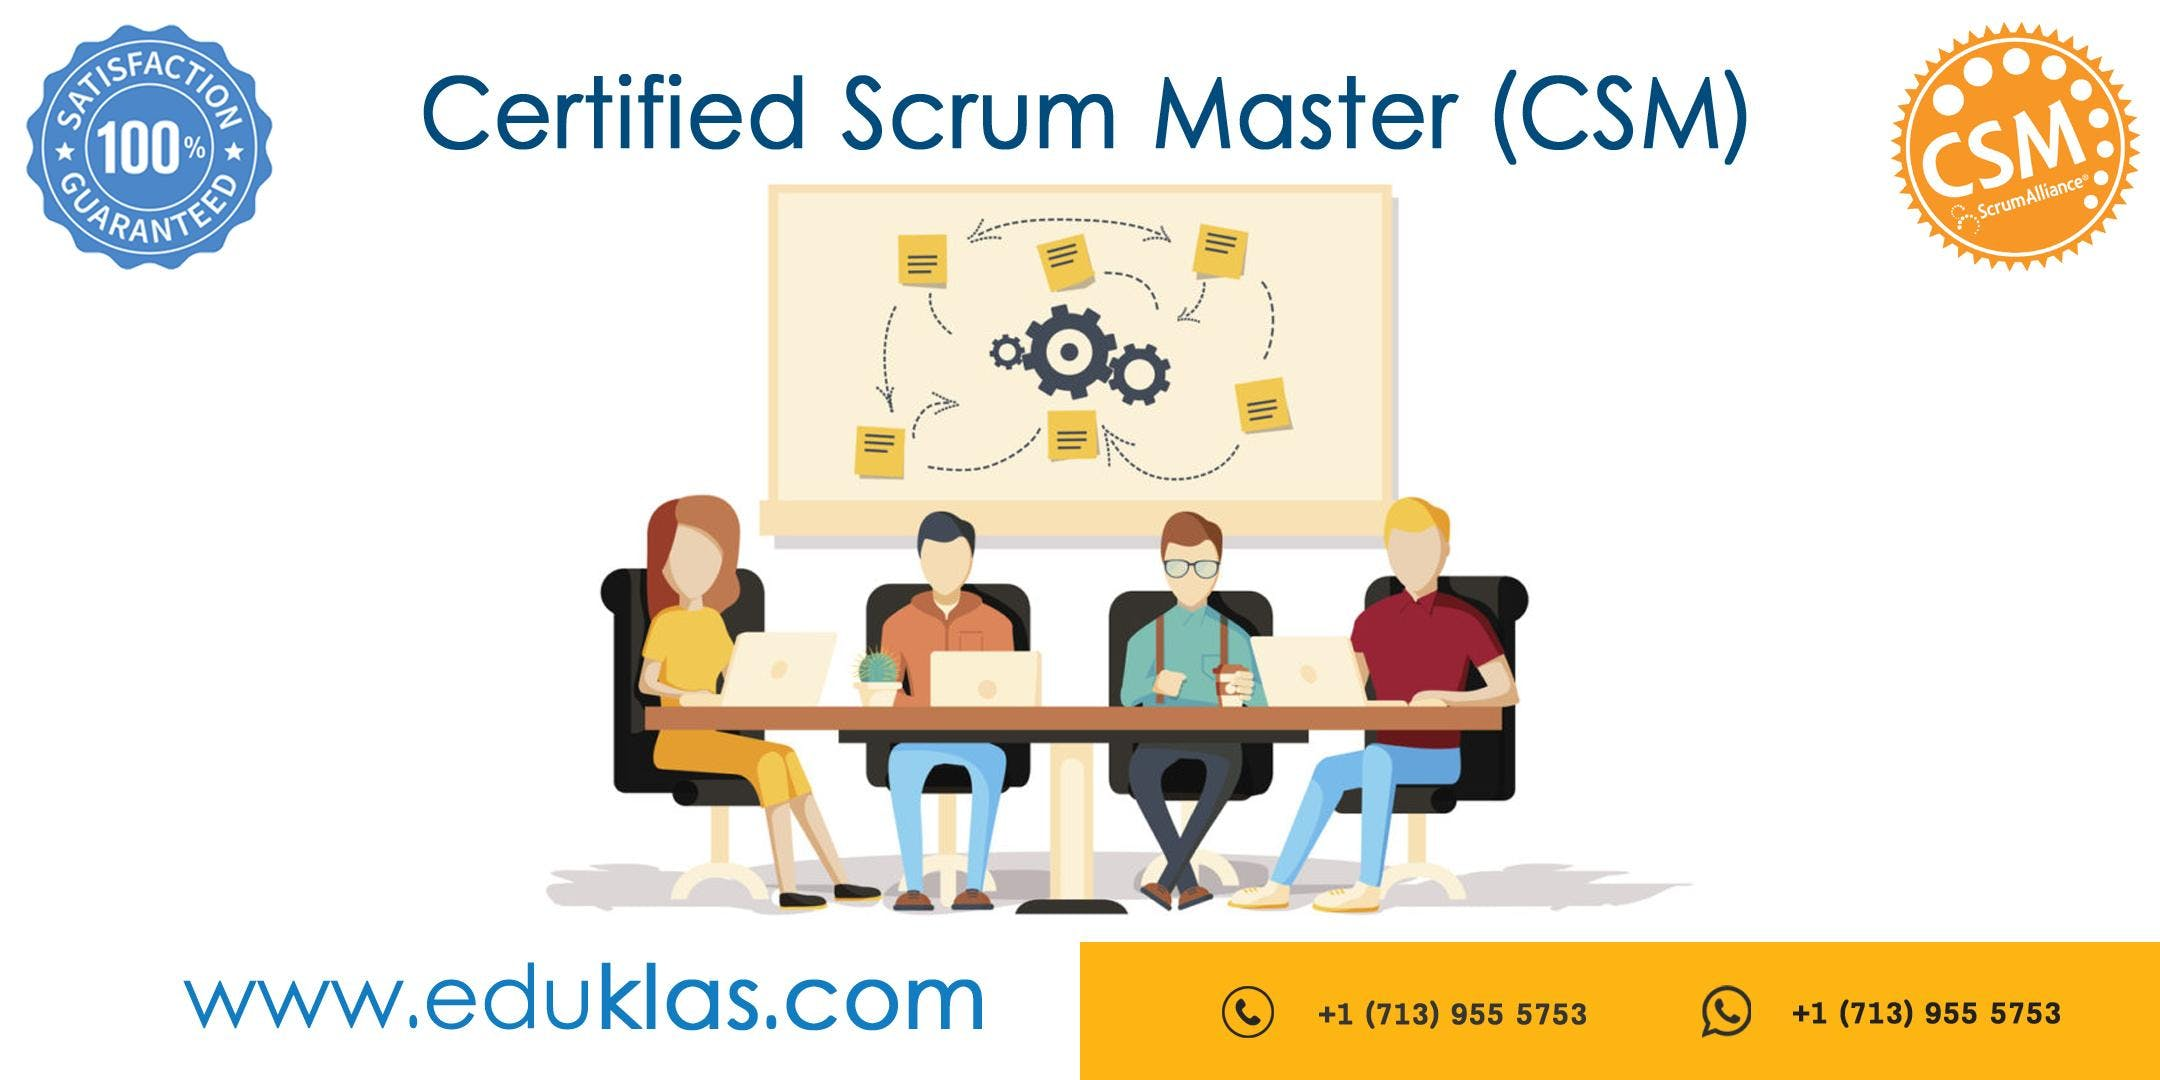 Scrum Master Certification | CSM Training | C